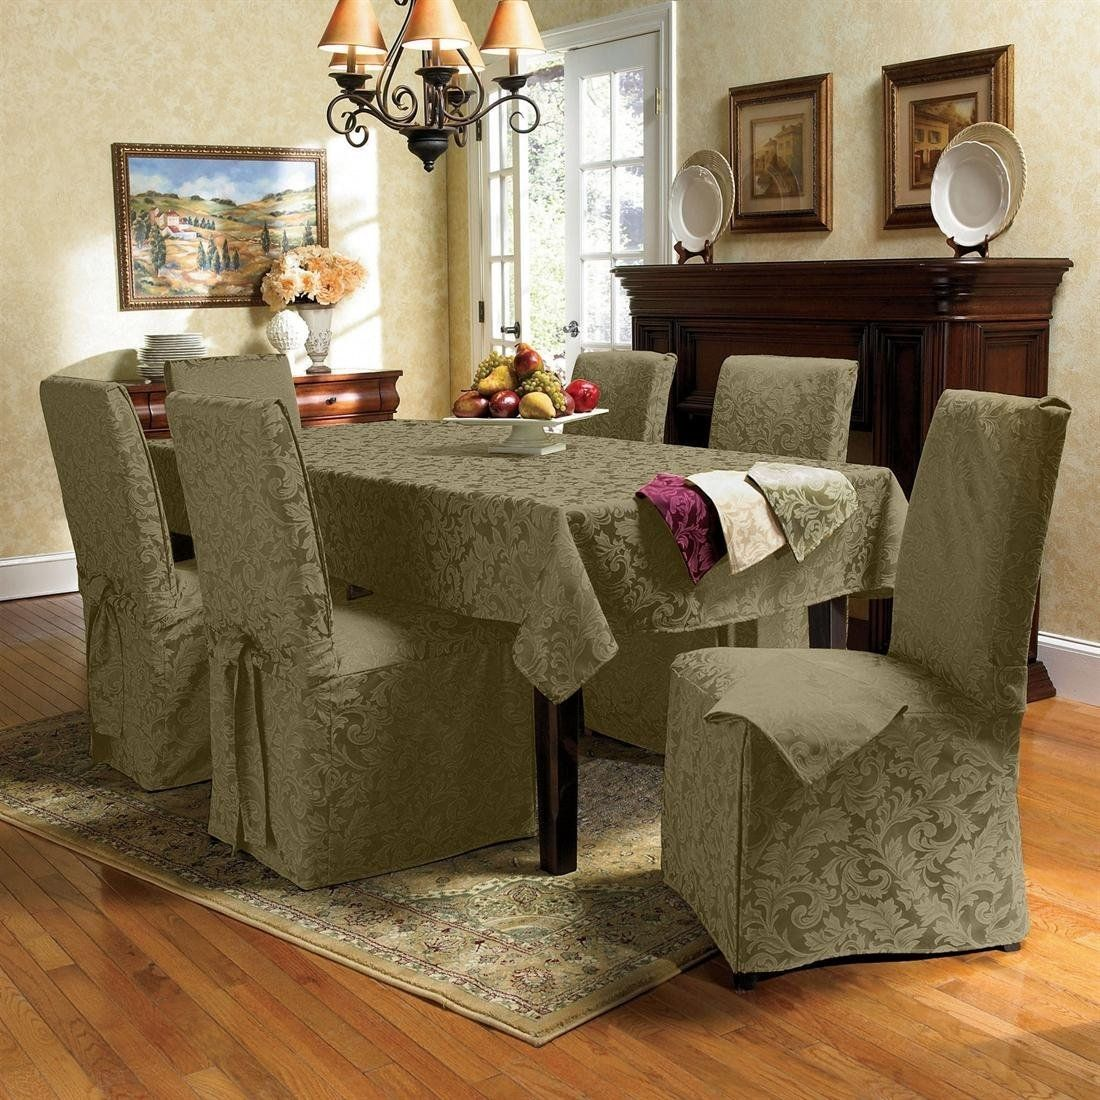 large dining chair pads gym reviews uk cushion covers http images11 com pinterest